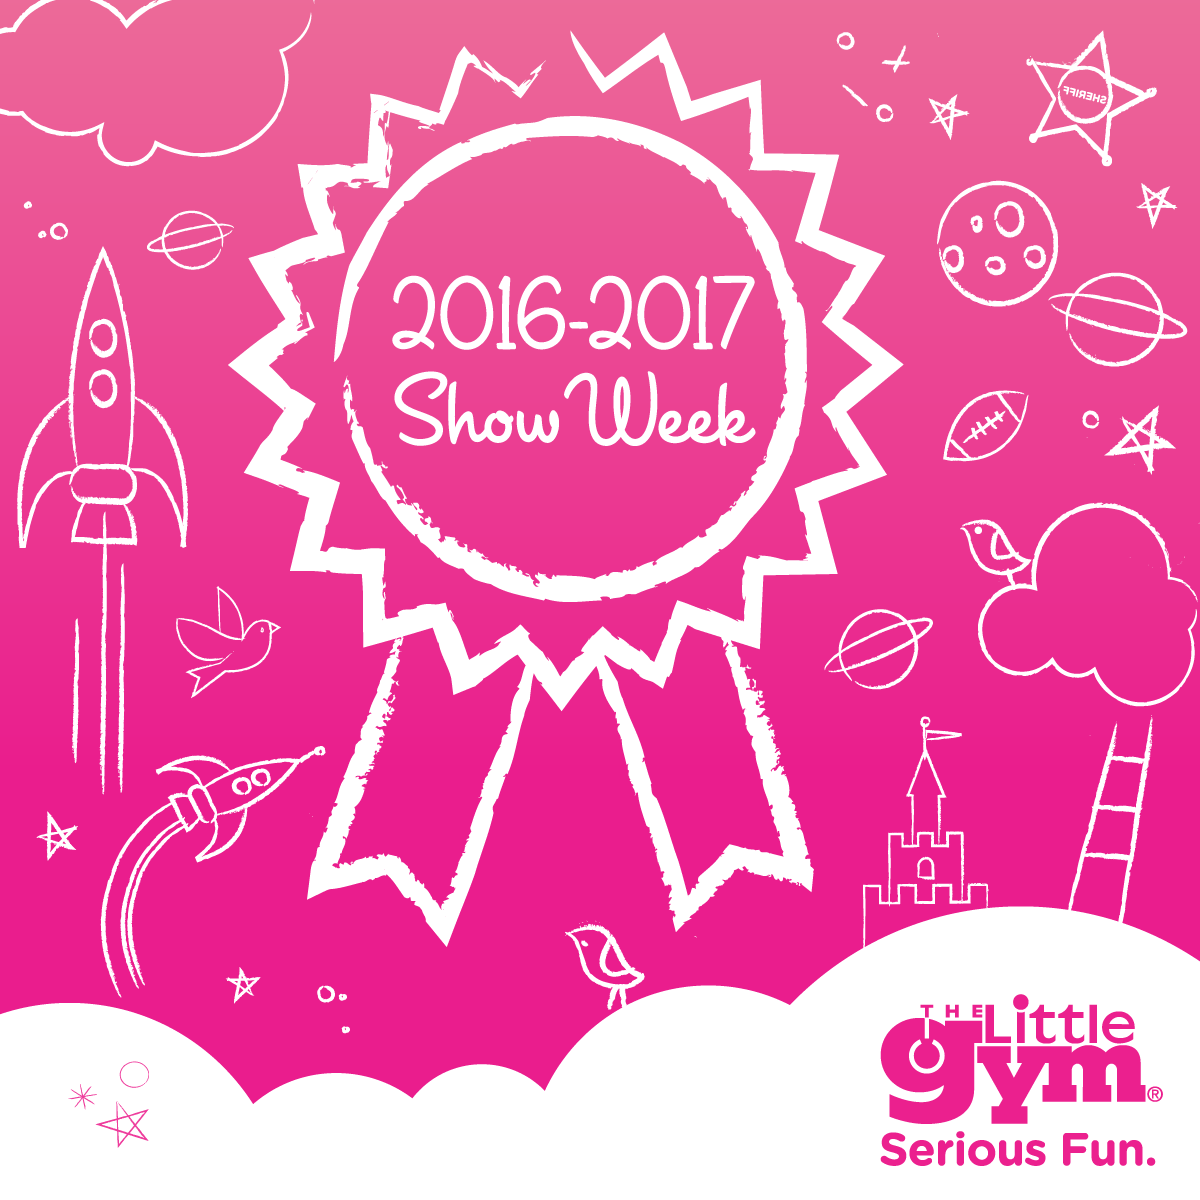 Show-week_Facebook_Image_Pink_2016-2017_copy